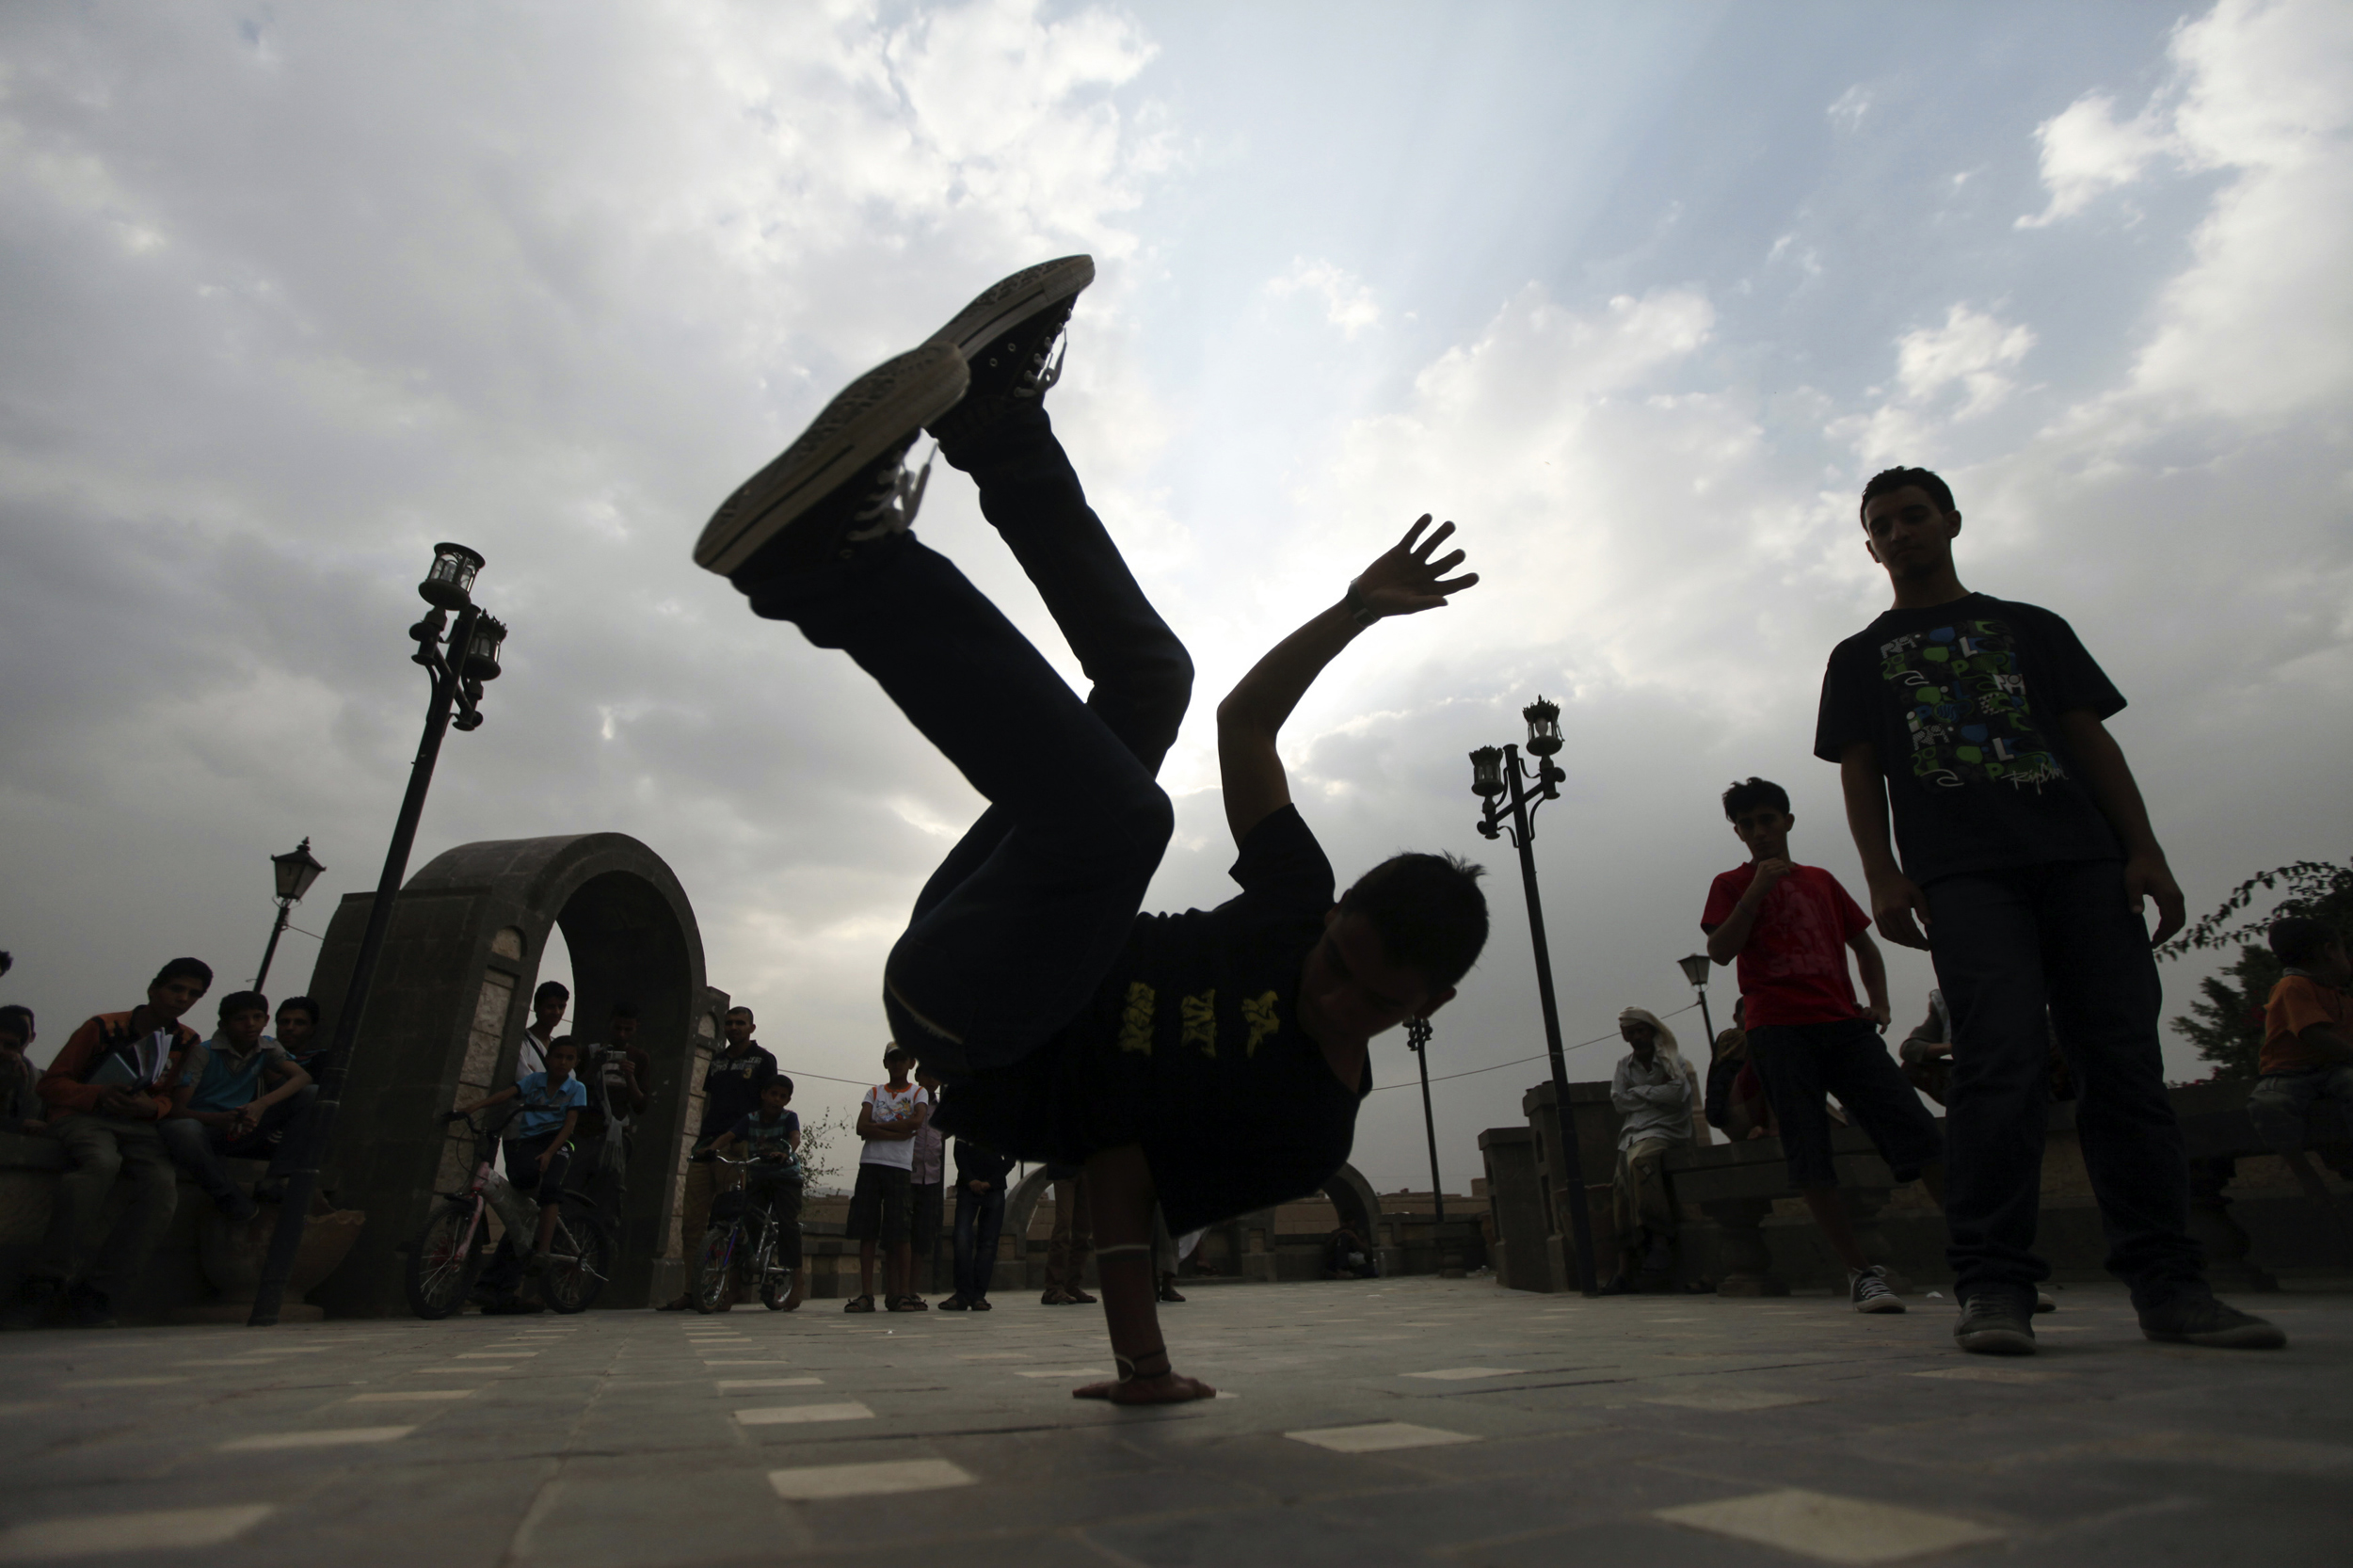 Breakdancing being considered for 2024 Olympics